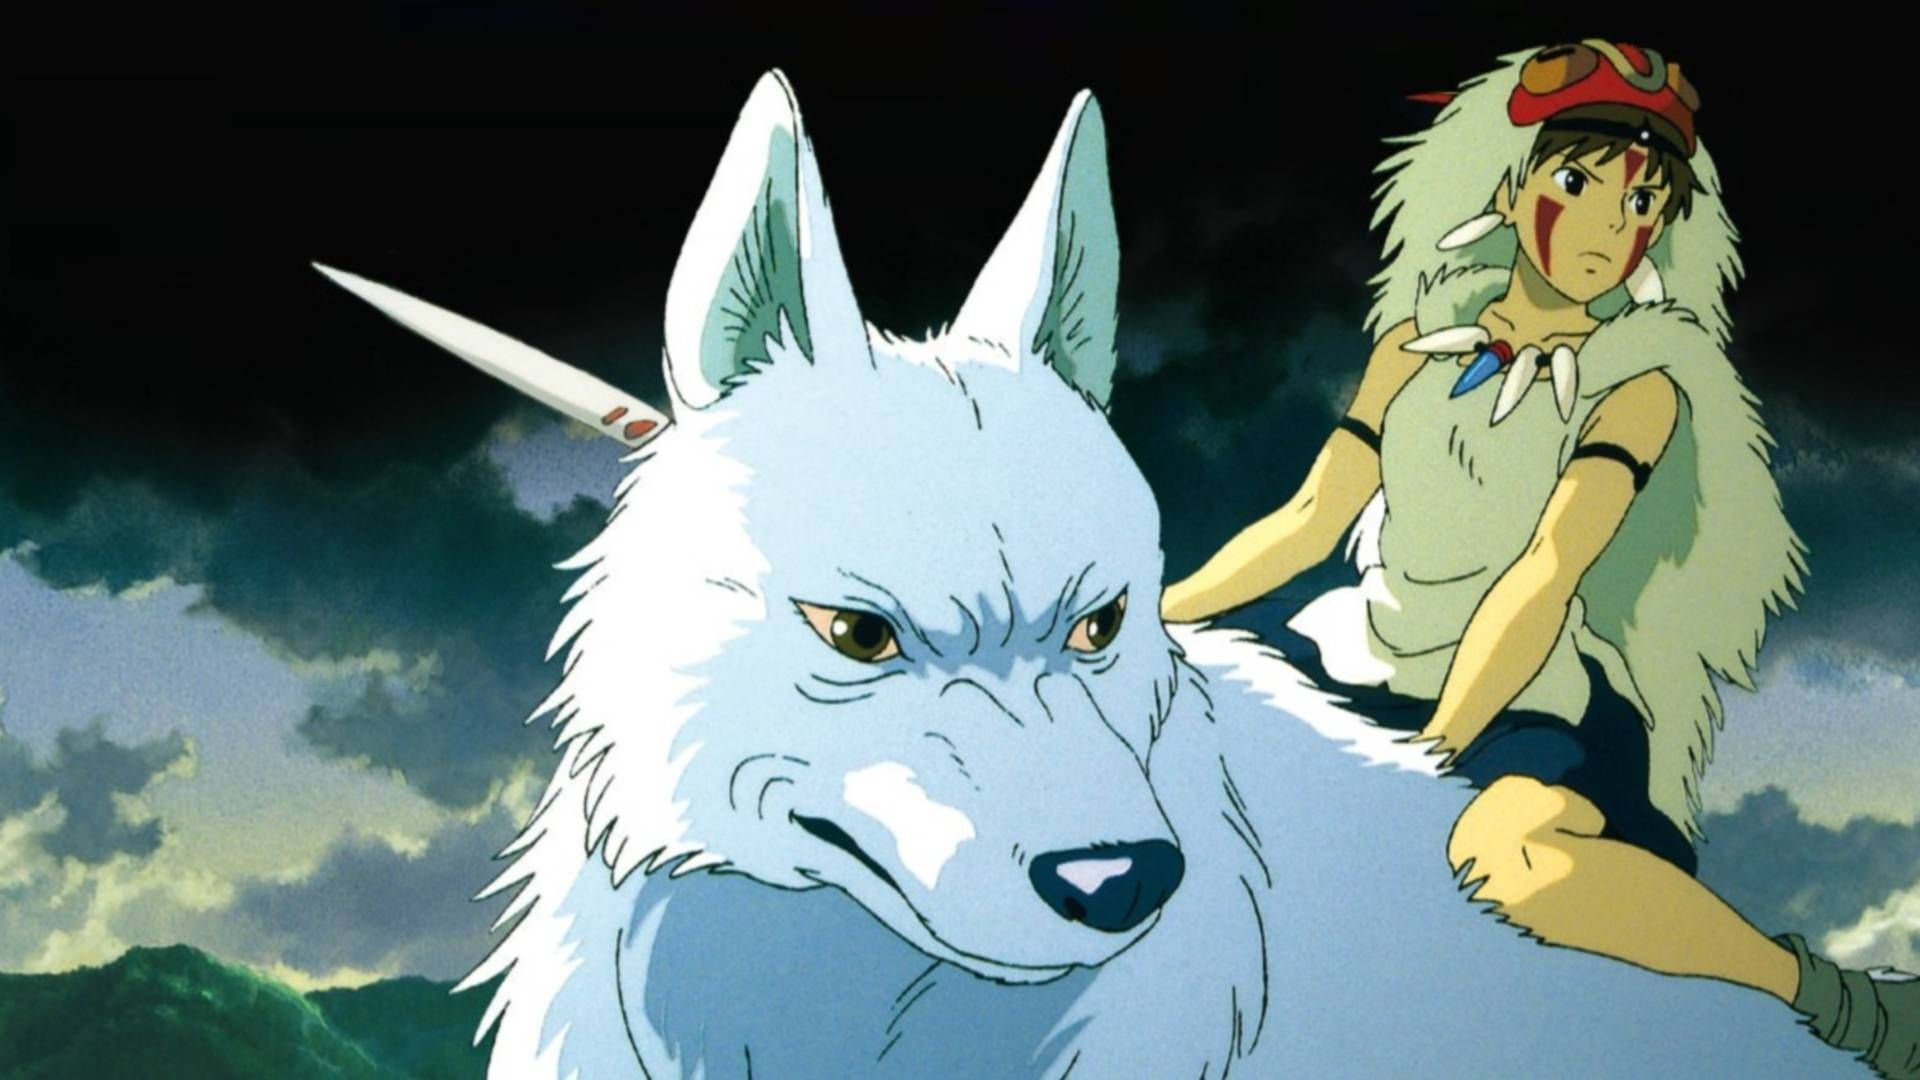 princess mononoke wallpaper 2560x1440